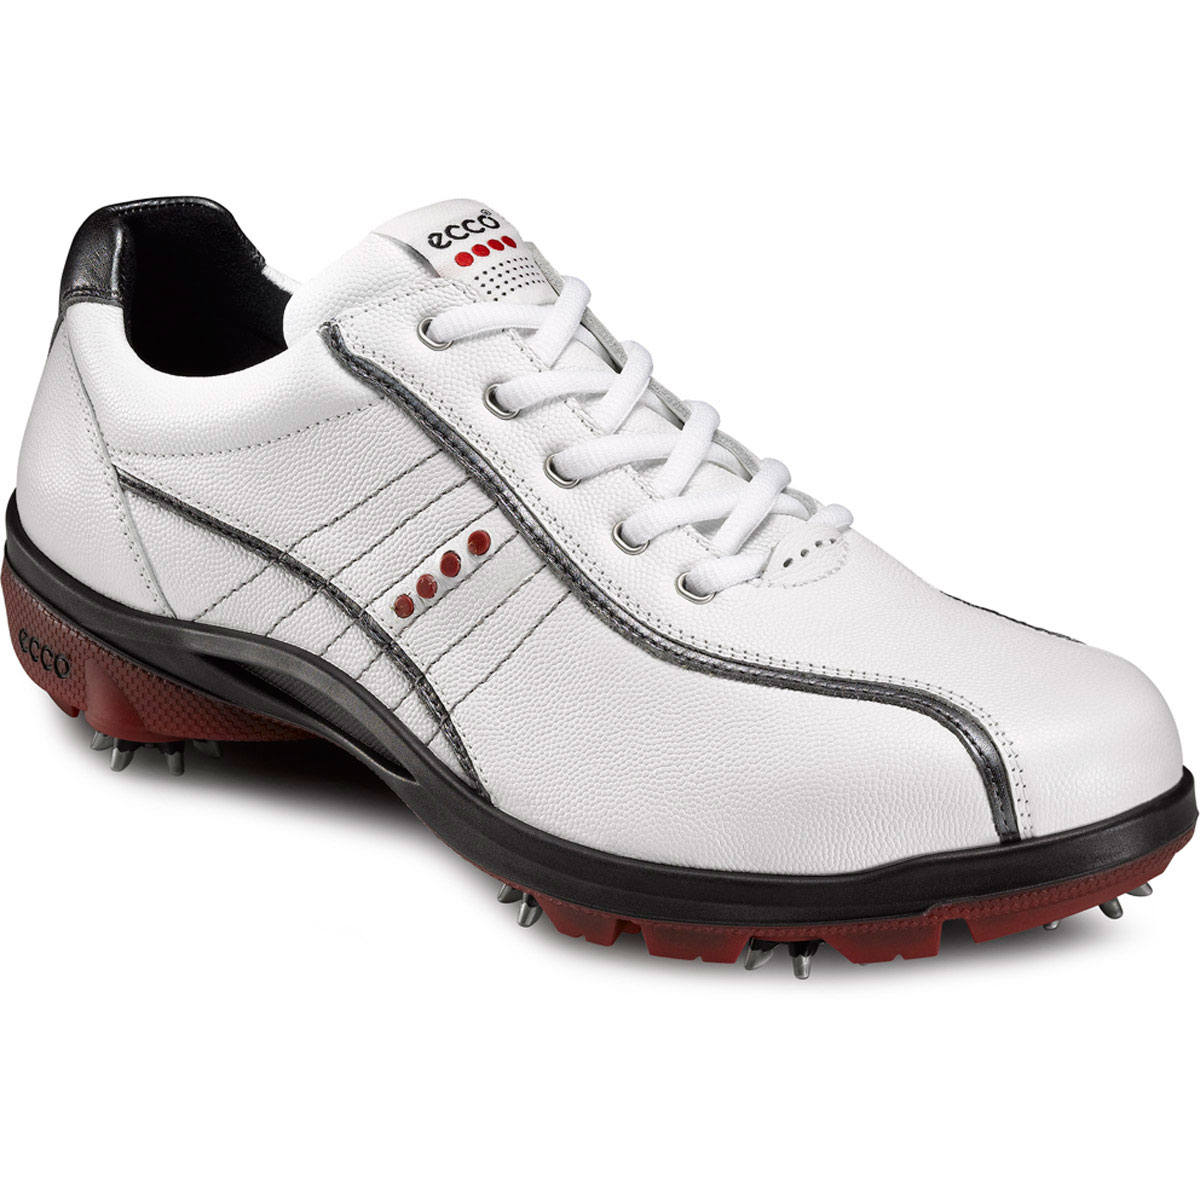 Ecco-2012-Men-039-s-Cool-III-Gore-Tex-Golf-Shoes-White